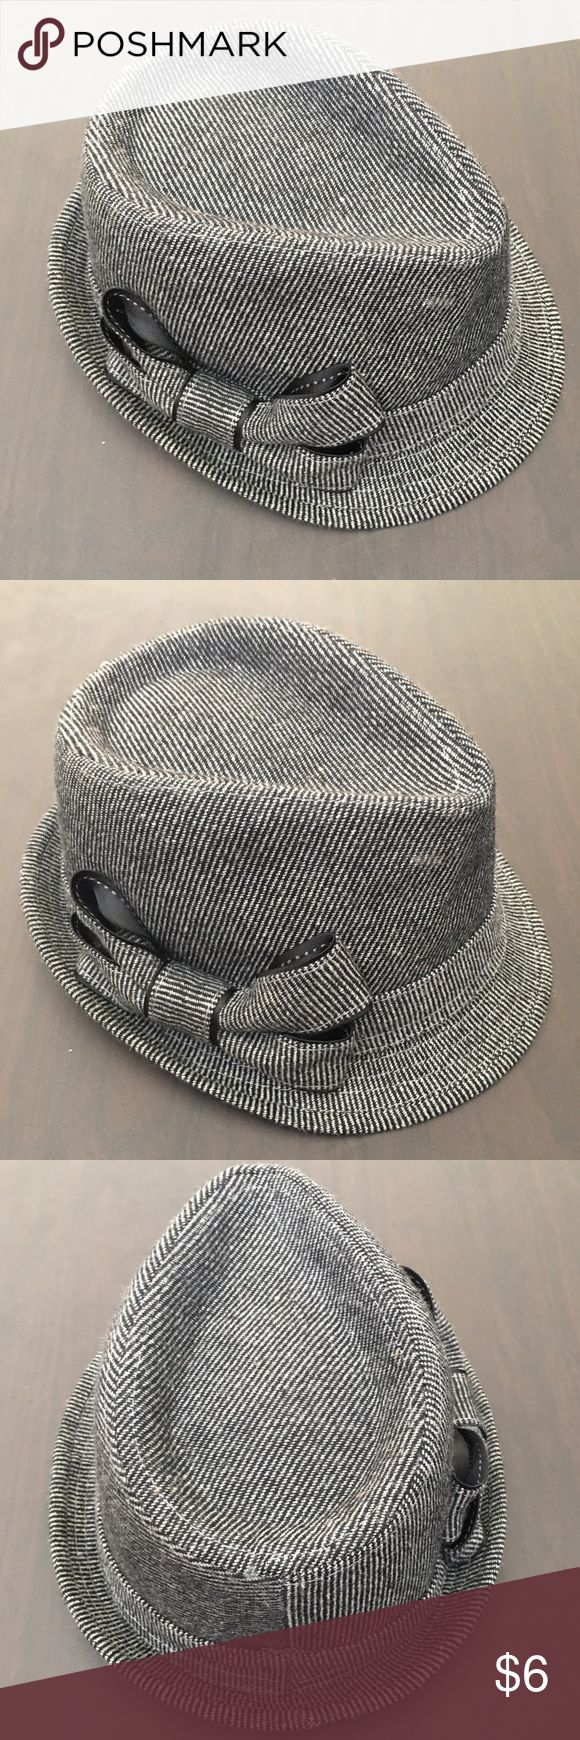 Target Fedora Hat Women's fedora hat. One size. Used once only. Comes from a pet and smoke free home Accessories Hats